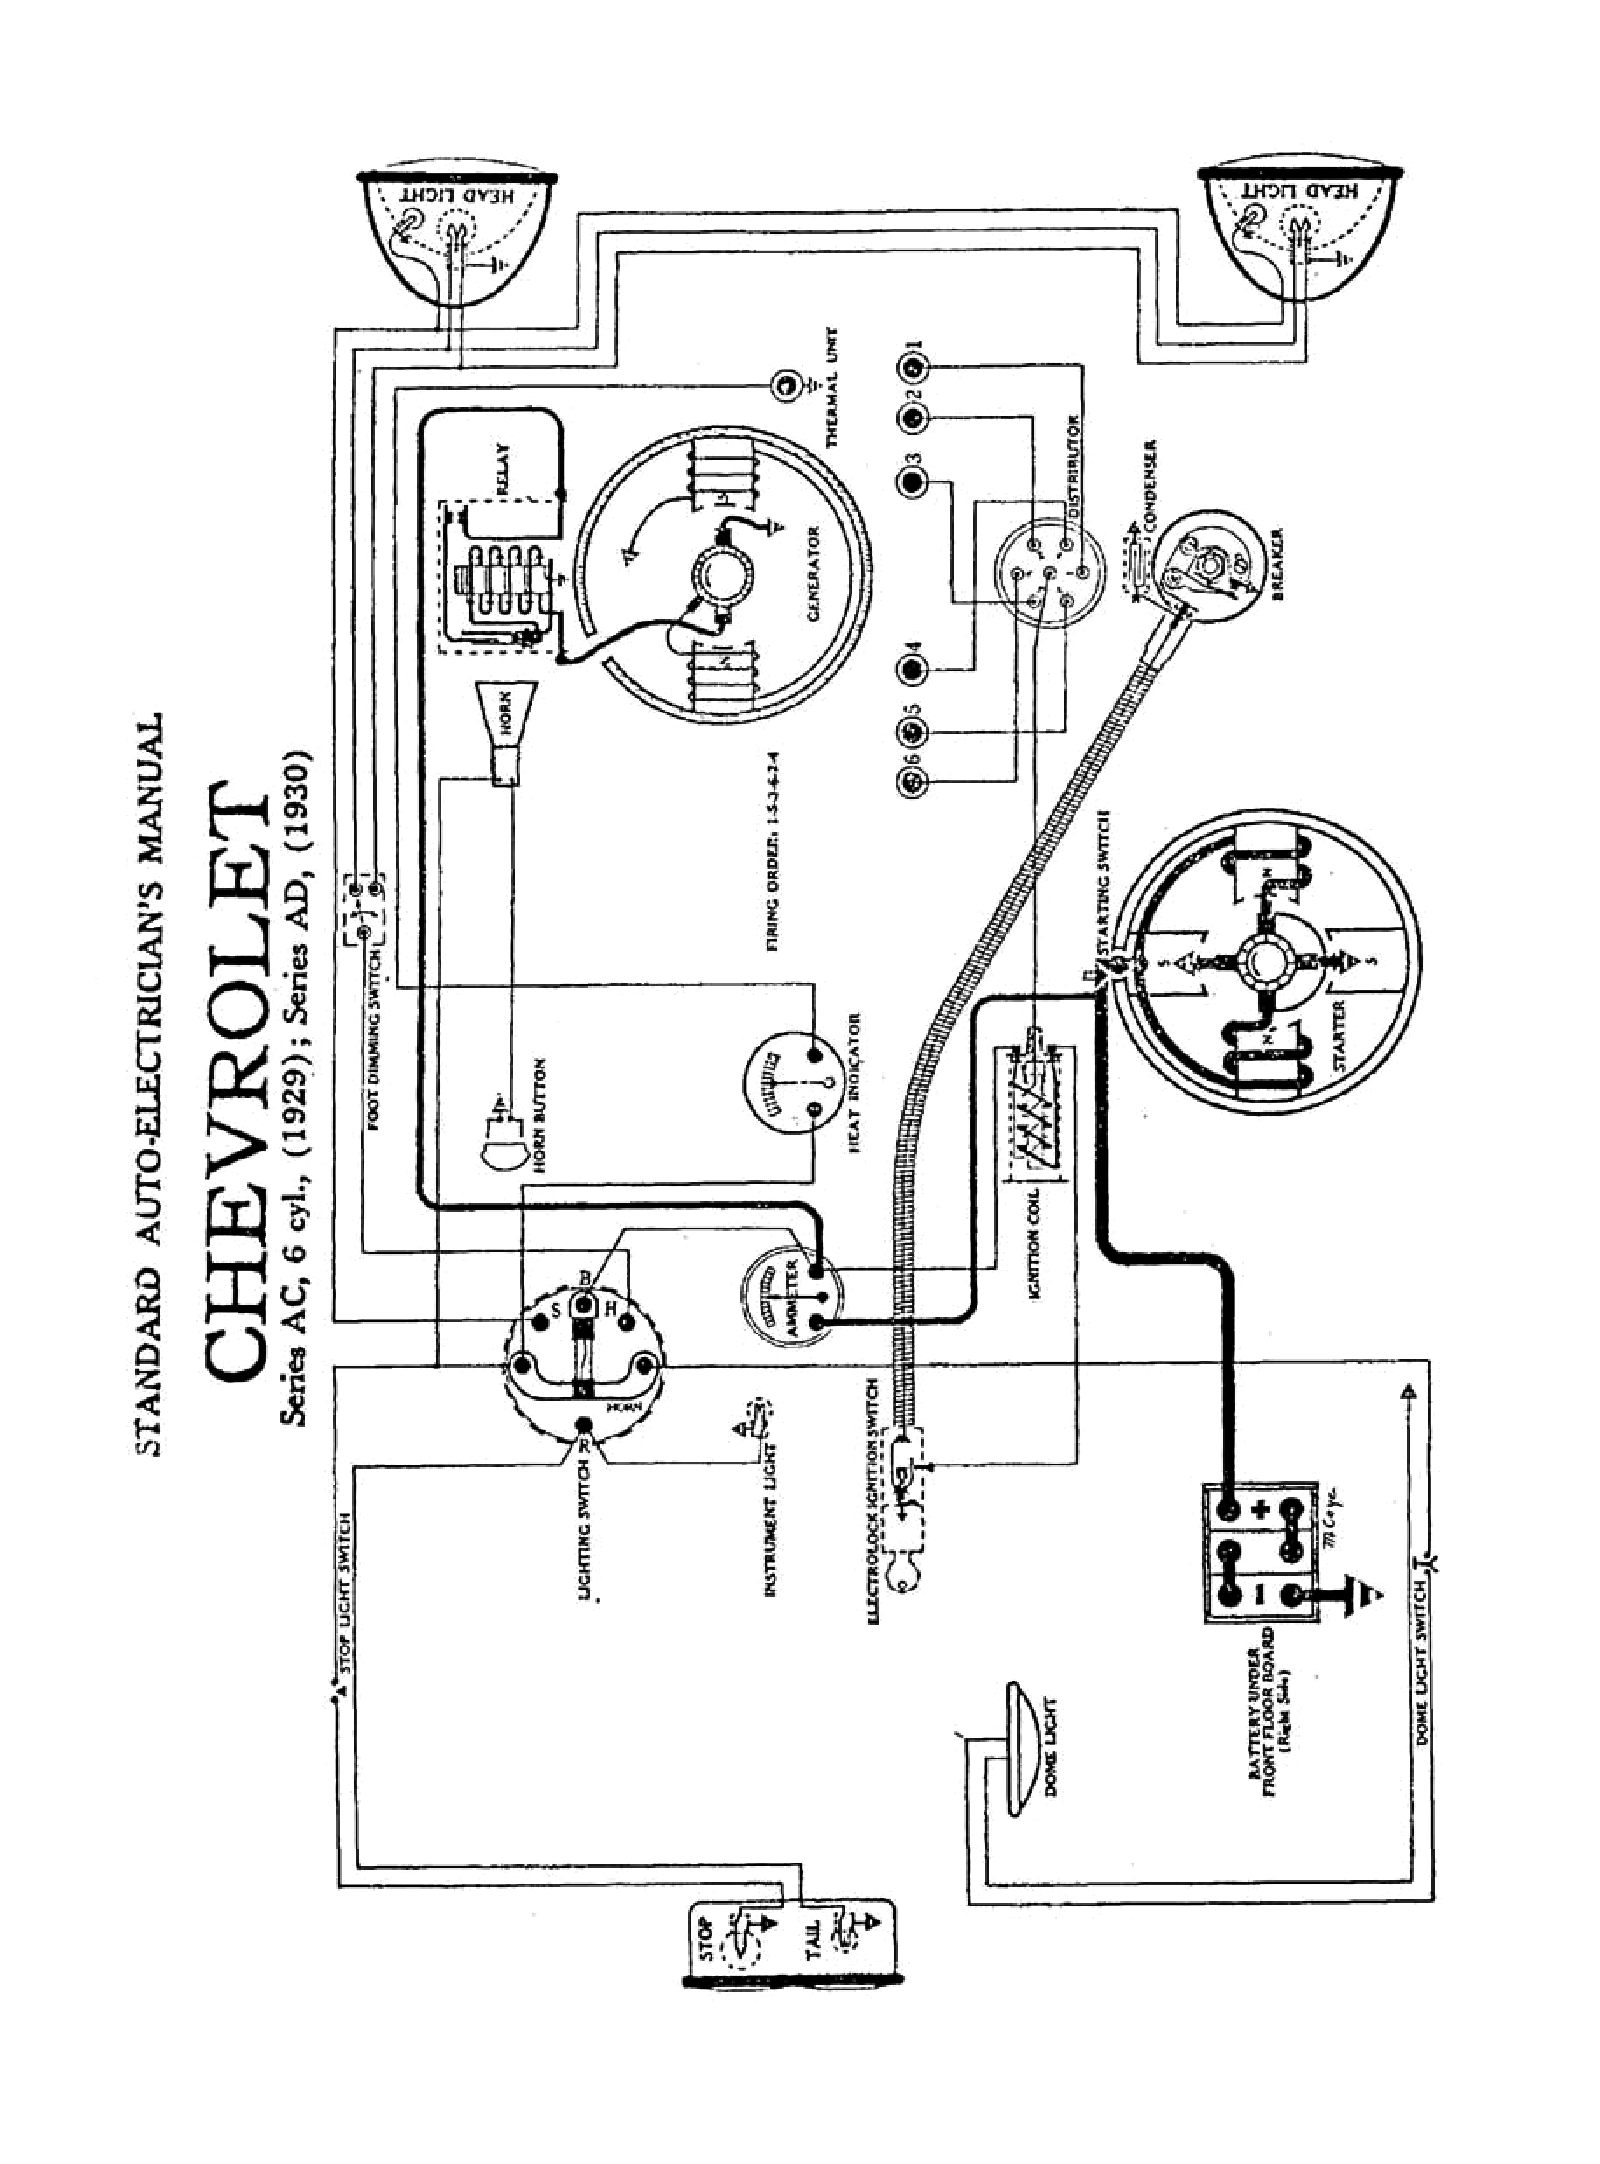 Chevy Wiring Diagrams 1949 Oldsmobile 1949 Pontiac Wiring Harness